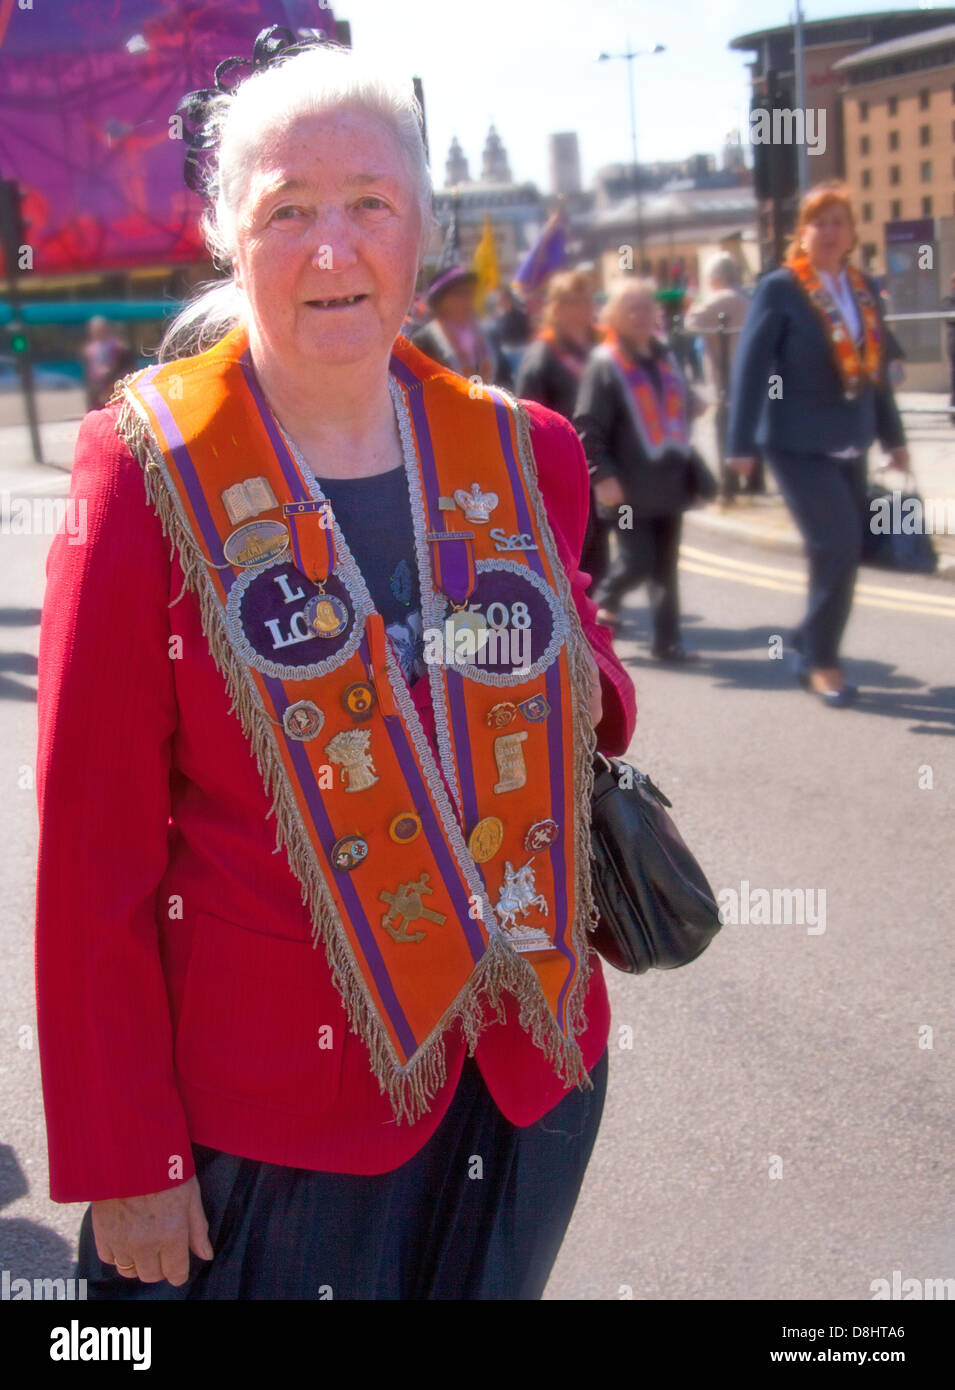 Sectarian,Orange,Order,May,2012,Proud,city,streets,parade,drums,Irish,heritage,battle,of,the,Boyne,St,Georges,hall,Lime,St,Street,streets,March,tension,old,fashioned,Royal,Lodge,LOL,woman,lady,grey,hair,old,older,season,Provincial,Grand,province,12th,12,tradition,prejeduce,prejudice,ignorance,Gotonysmith,Northern,Ireland,NI,troubles,future,peace,agreement,july,juniors,recruit,UDA,UDF,paramilitaries,terrorists,terrorist,Shankill,Belfast,lads,volunteer,volunteers,NO,SURRENDER,retired,people,L1,1JD,Loyal Orange Lodge,Buy Pictures of,Buy Images Of